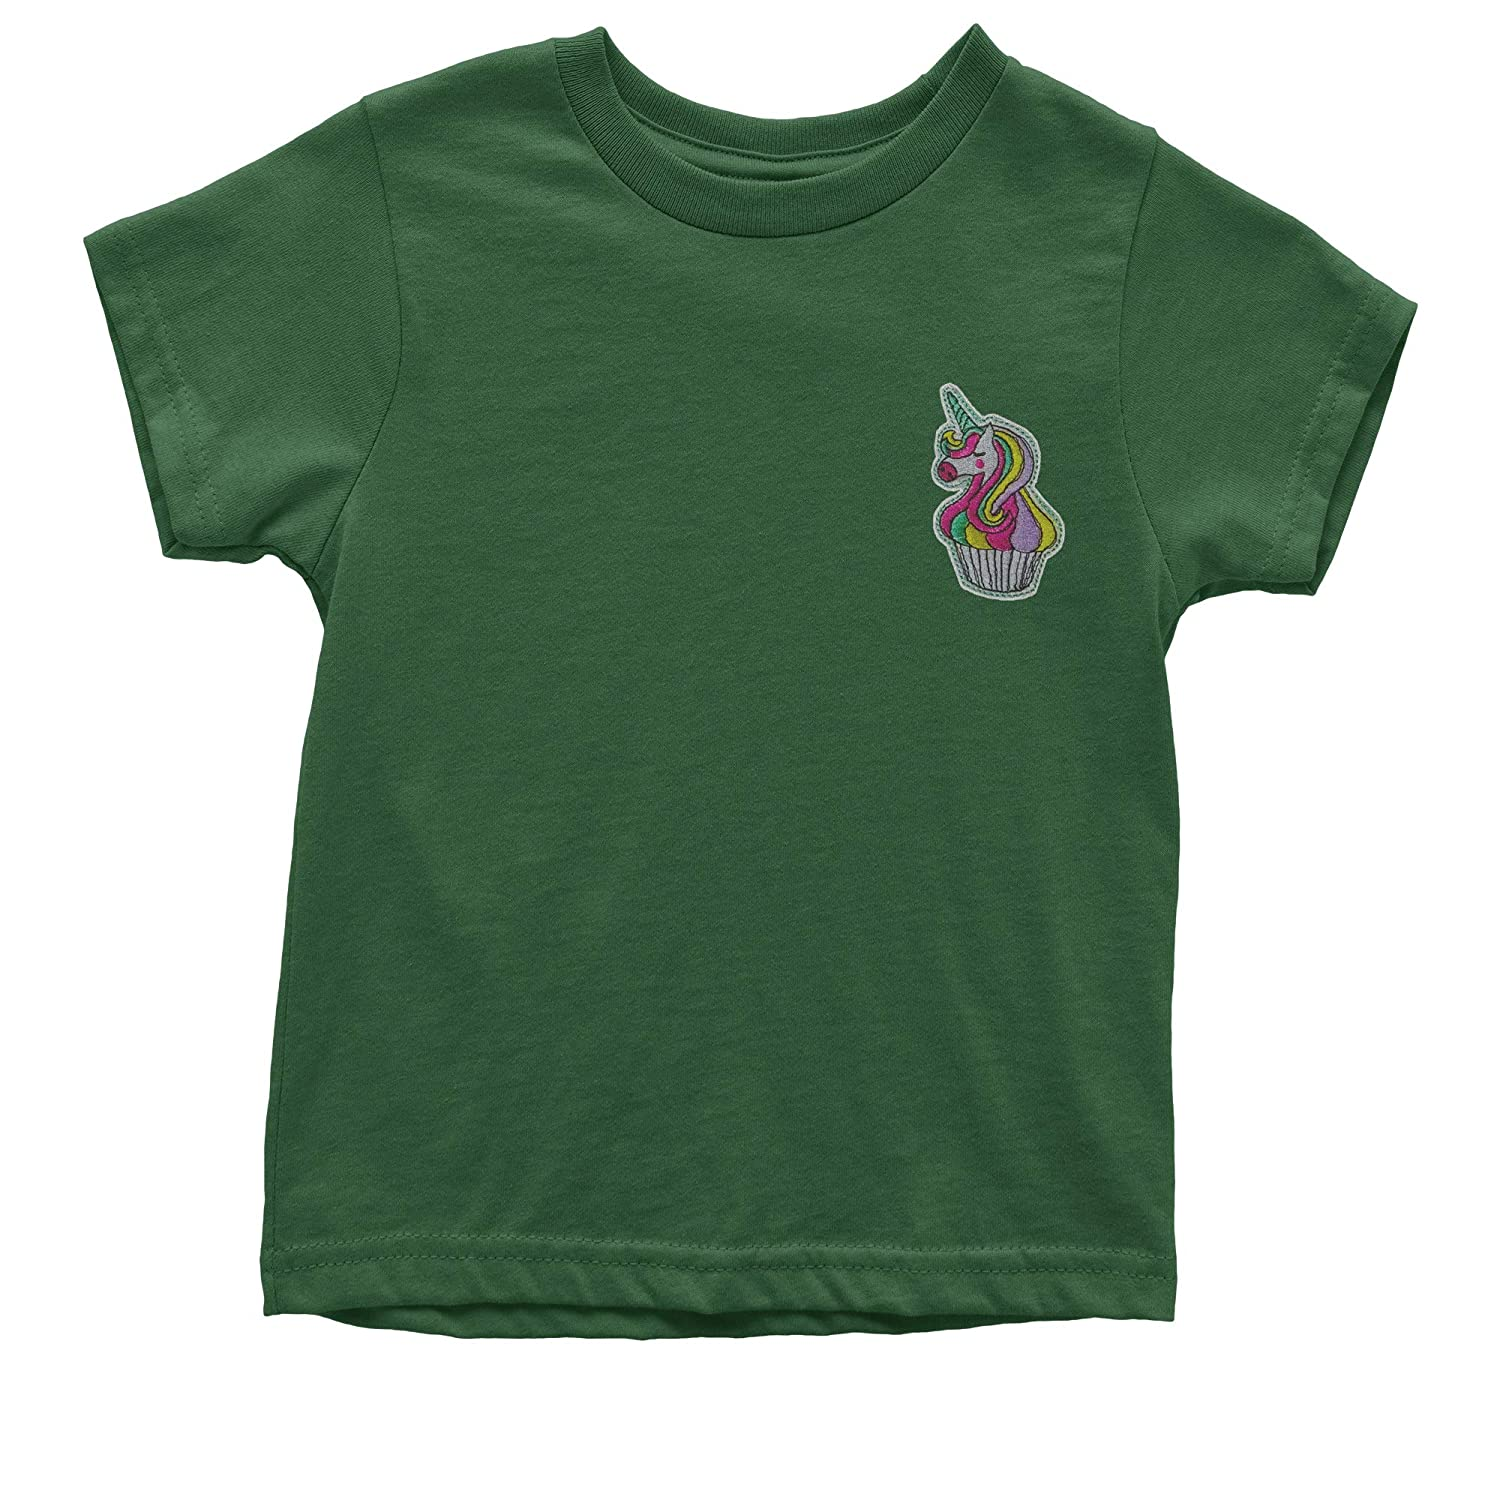 Pocket Print Youth T-Shirt Expression Tees Embroidered Unicorn Cupcake Patch